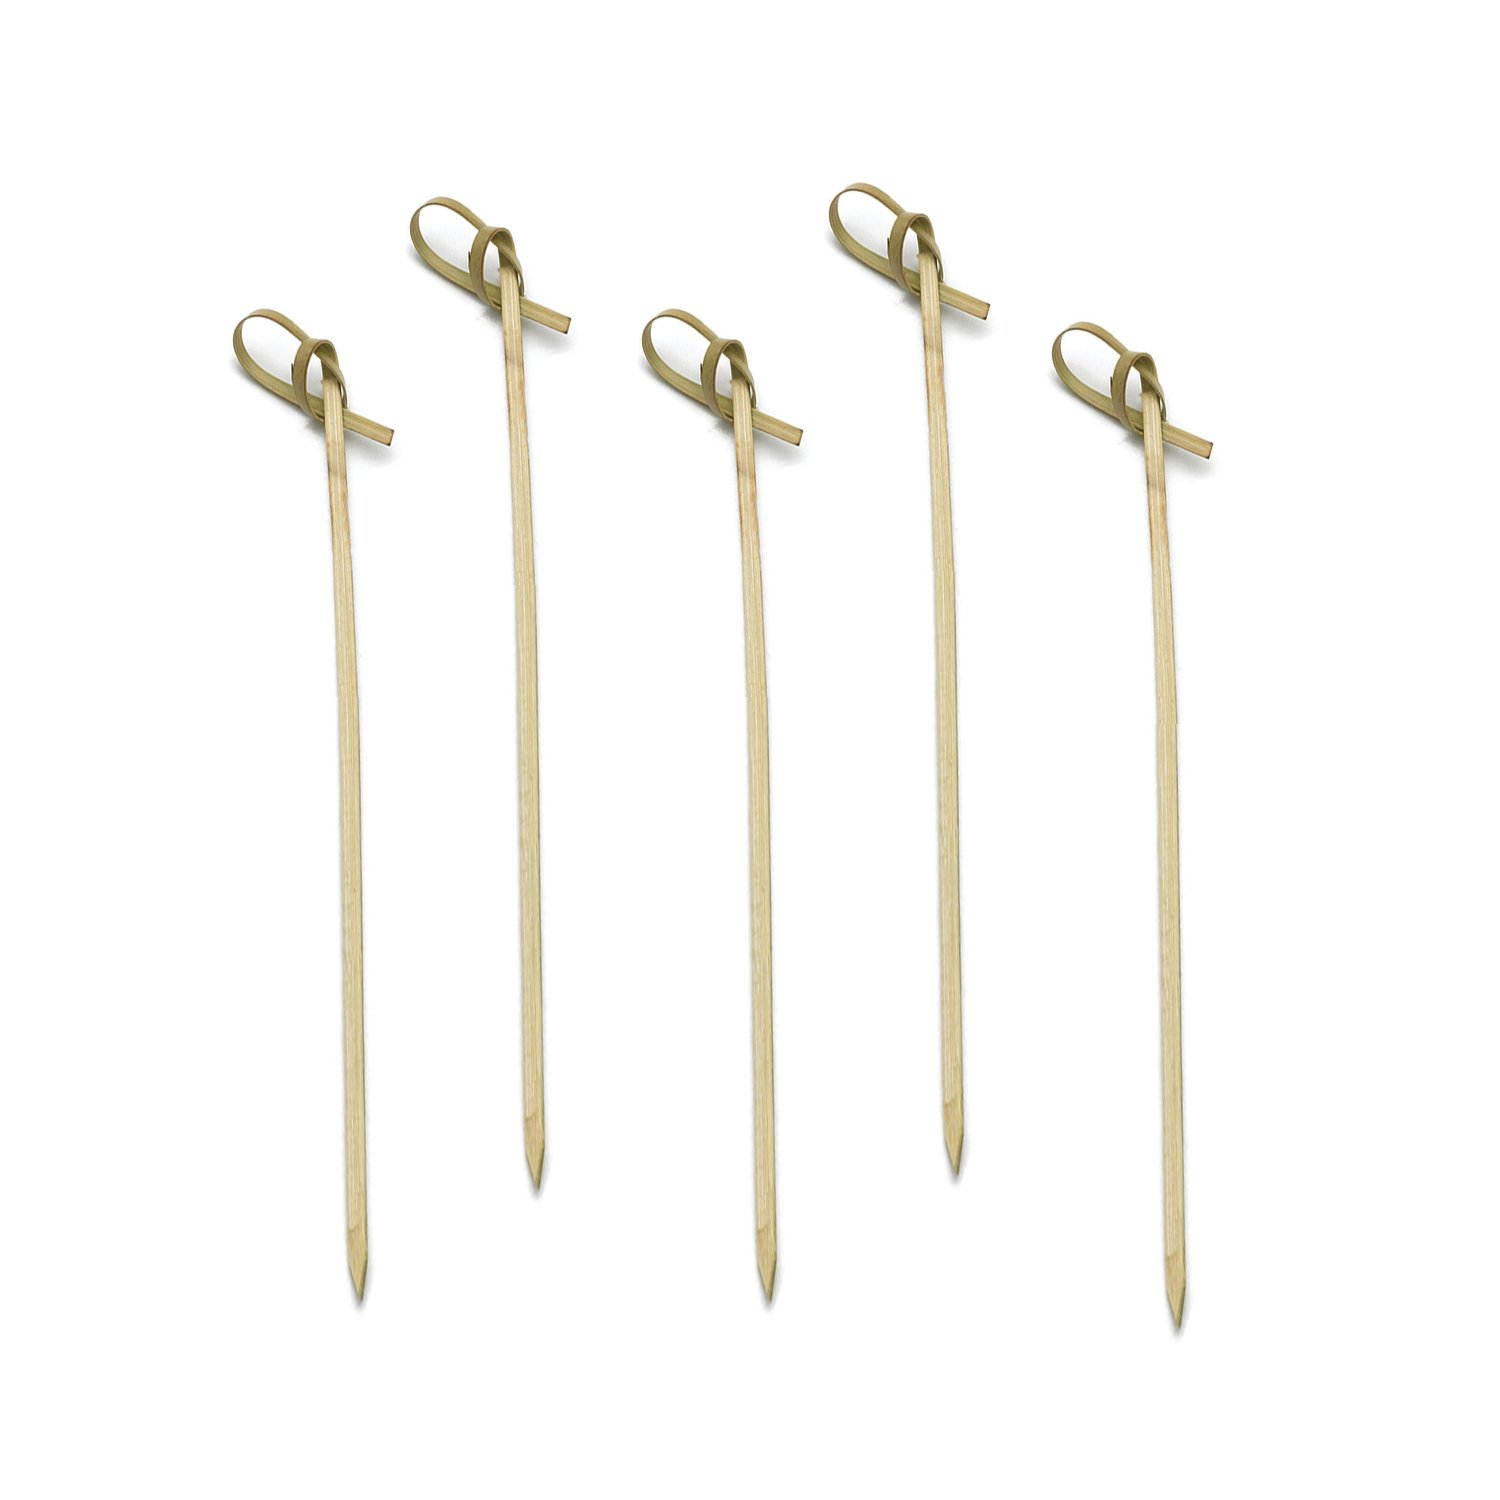 Party Essentials N438968 Compostable Bamboo Knot Picks, 7'', Green, 10 Packs of 100 (Pack of 1000)